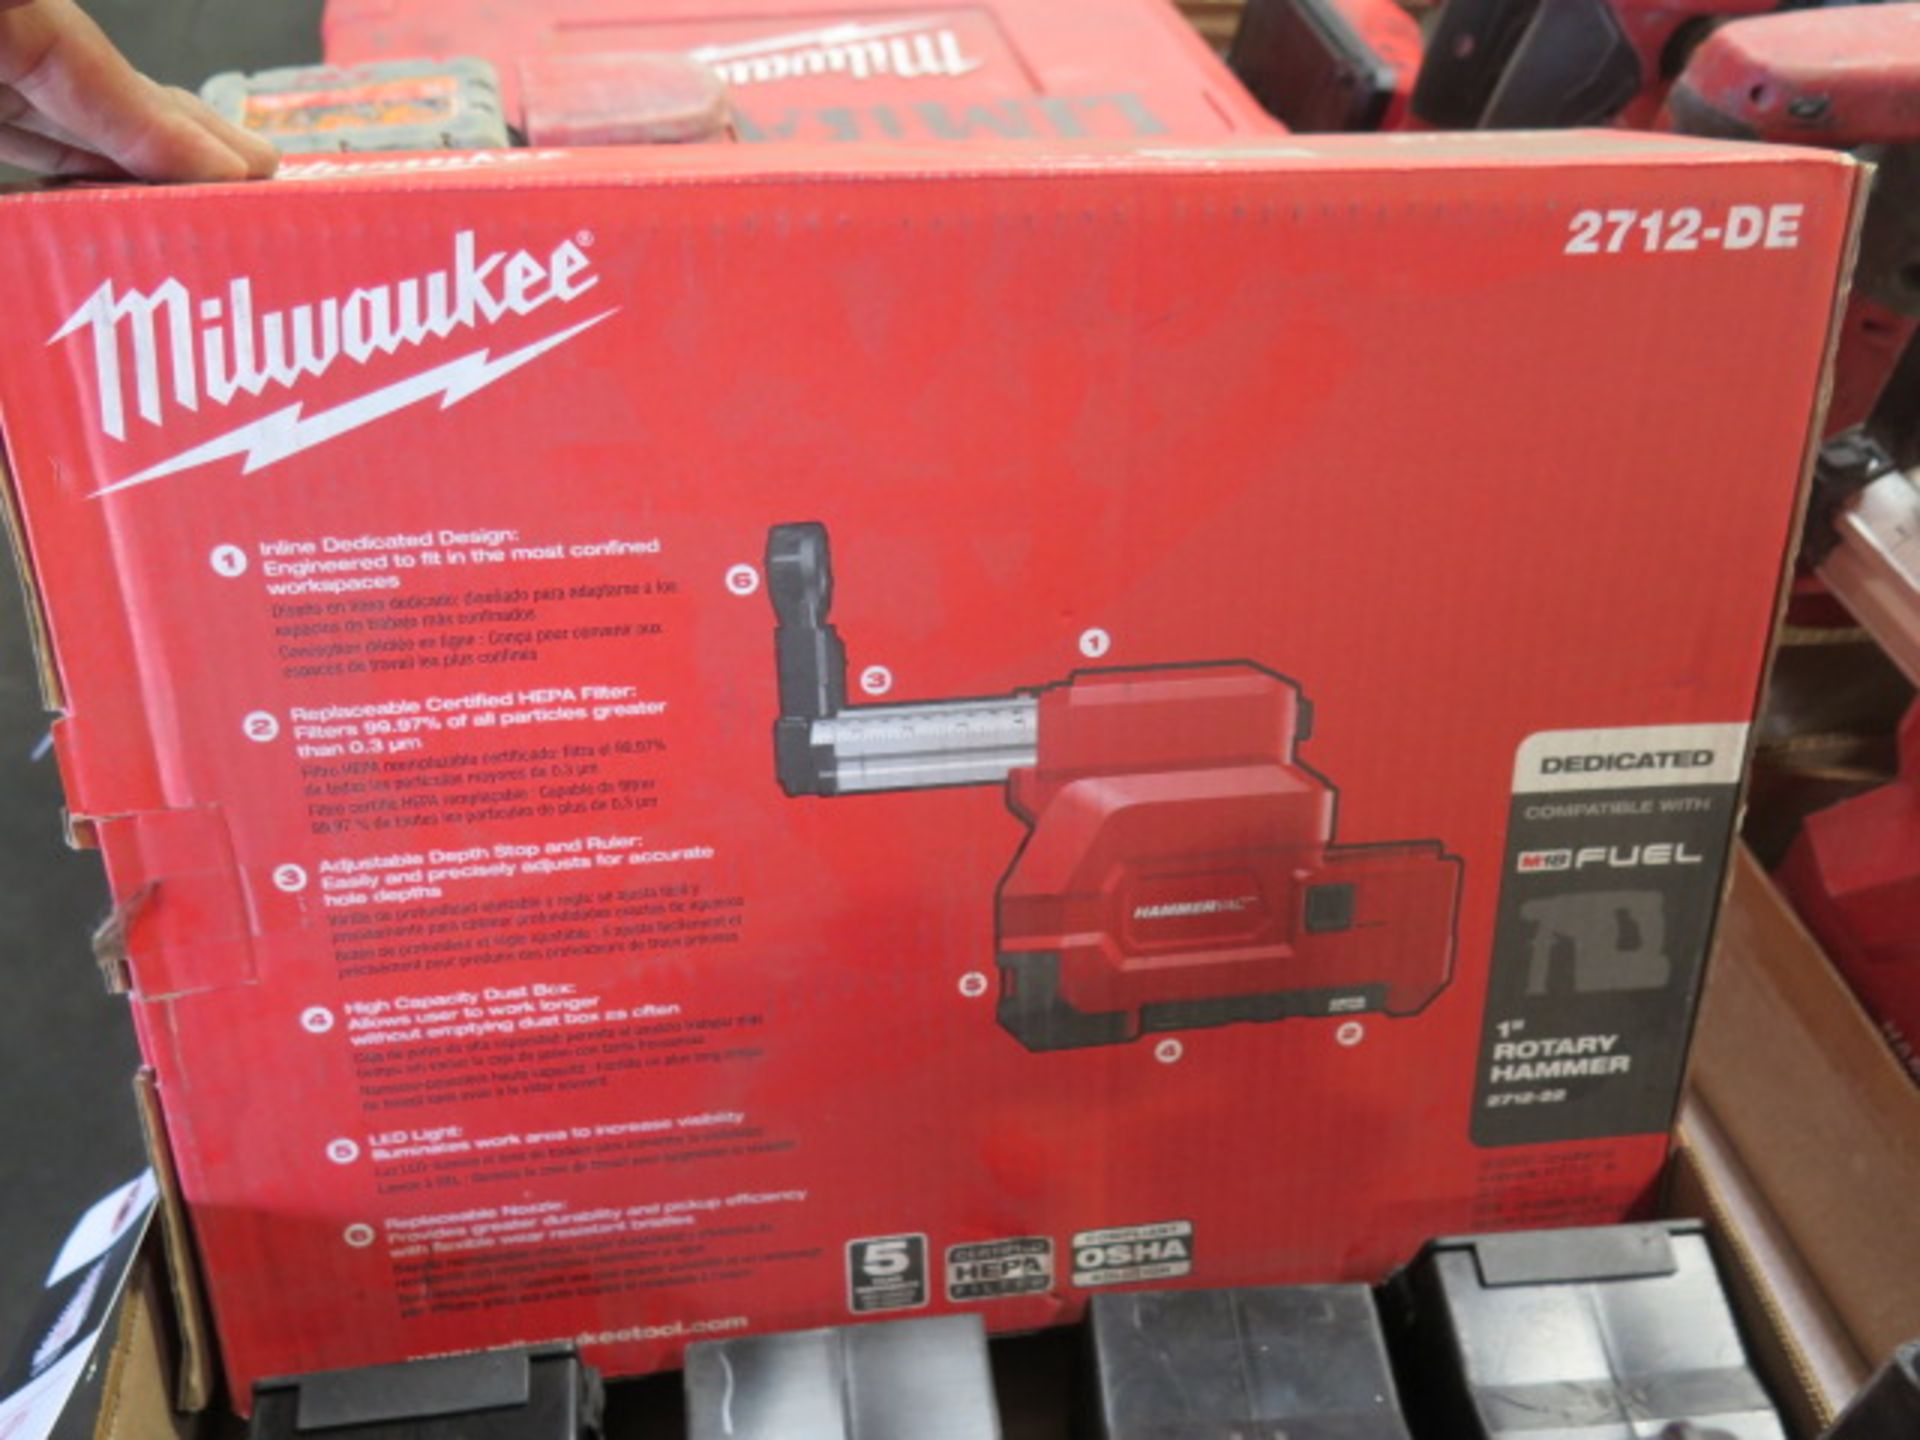 Milwaukee Dust Extractor (NEW) and (4) Filter Boxes (SOLD AS-IS - NO WARRANTY) - Image 4 of 4